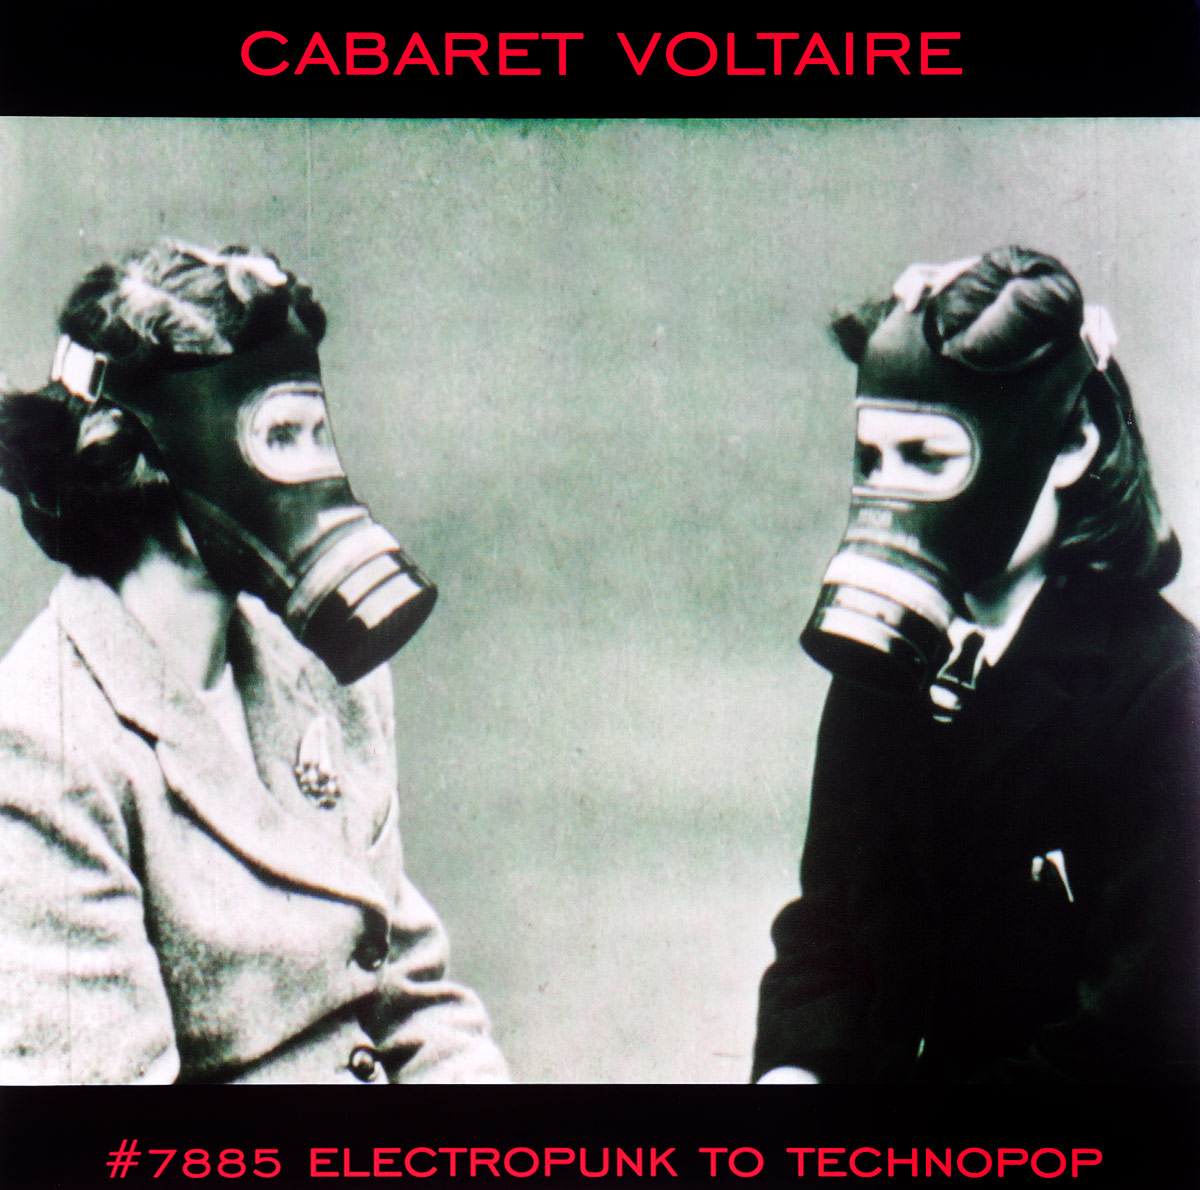 Cabaret Voltaire Cabaret Voltaire. #7885 (Electropunk To Technopop 1978 – 1985) (2 LP) cabaret voltaire cabaret voltaire the covenant the sword and the arm of the lord lp